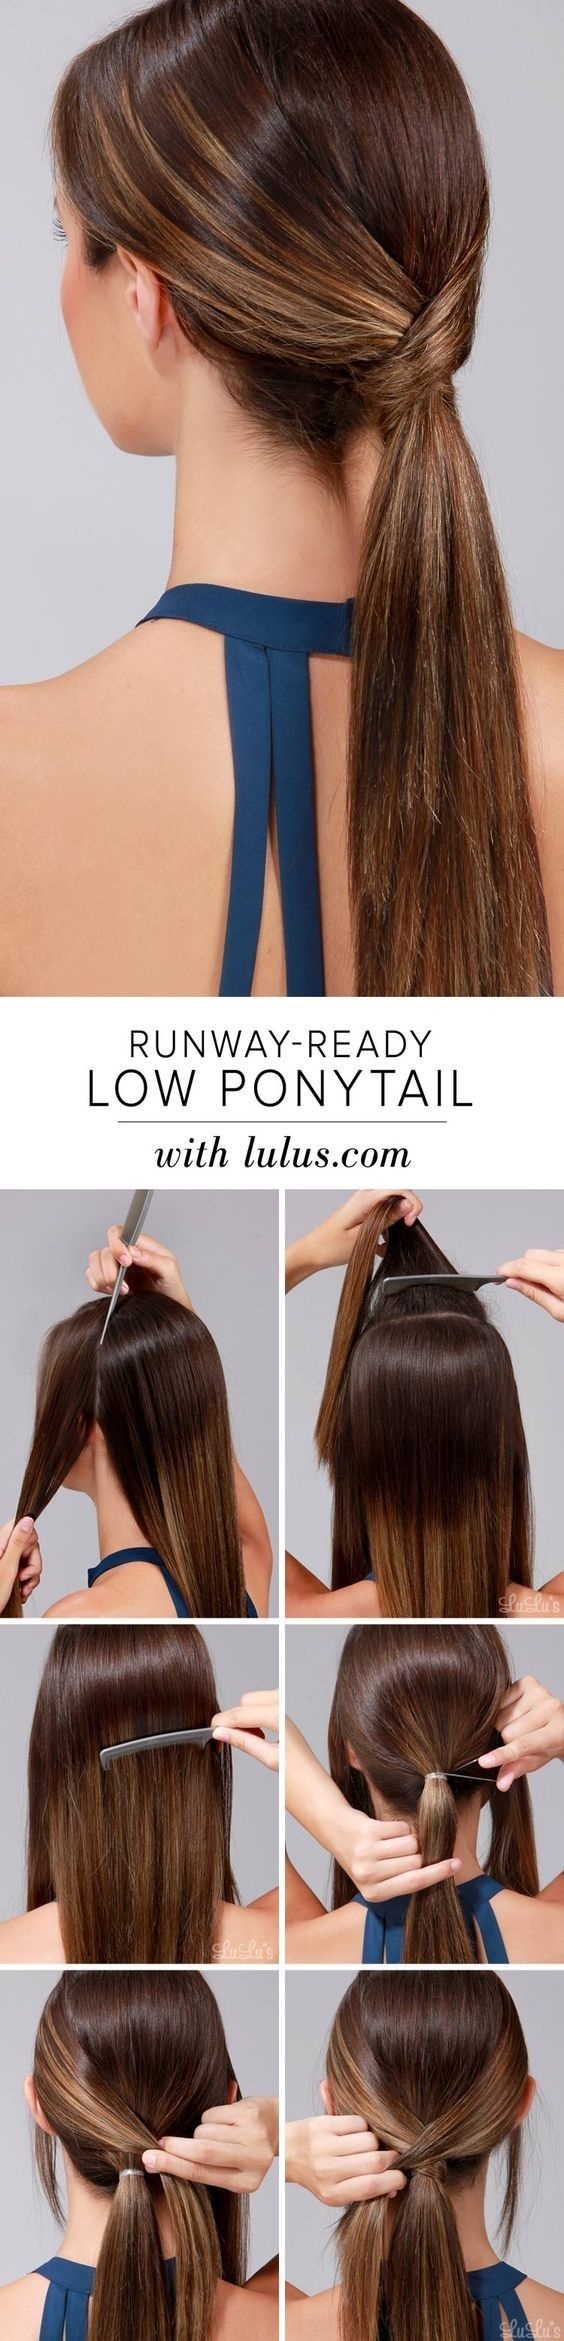 10 easy ponytail hairstyles: long hair style ideas 2018 | pinterest